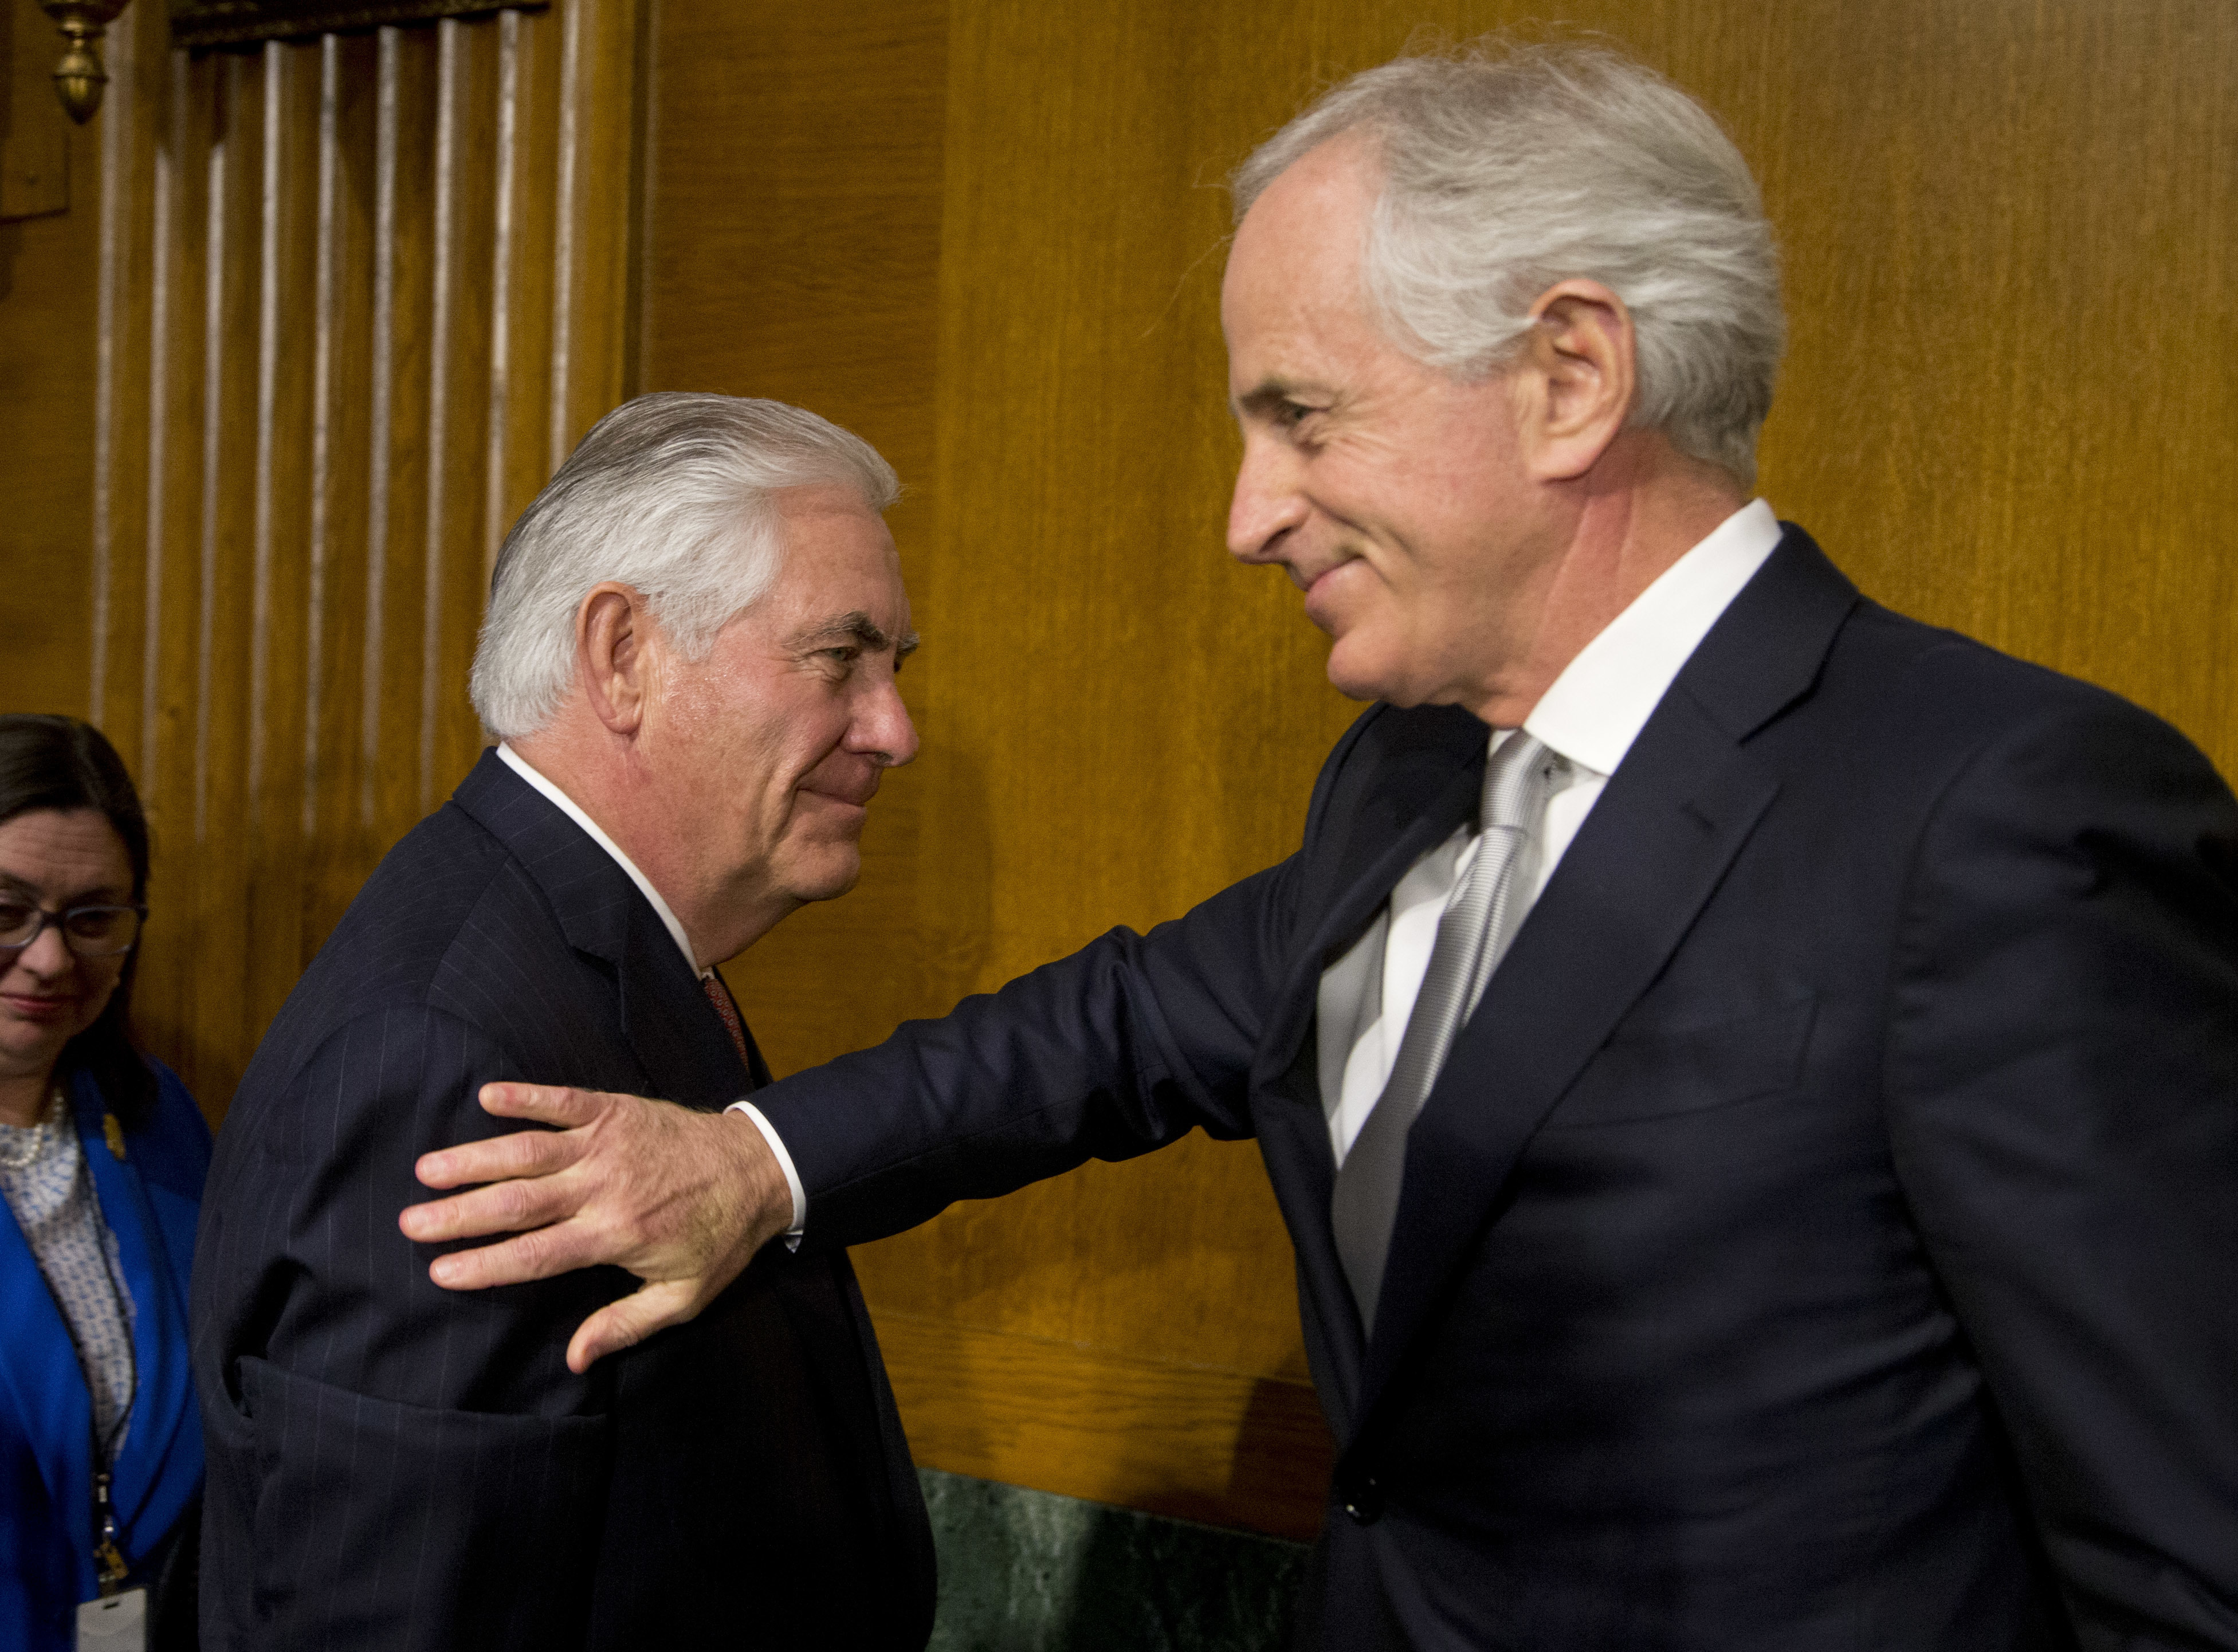 Sen. Bob Corker, R-Tenn., chairman of the Senate Foreign Relations Committee (R) pats Secretary of State-designate Rex Tillerson (L) on the shoulder after his testimony before the Senate Foreign Relations Committee on Capitol Hill in Washington on Jan. 11, 2017. (AP Photo/Steve Helber)